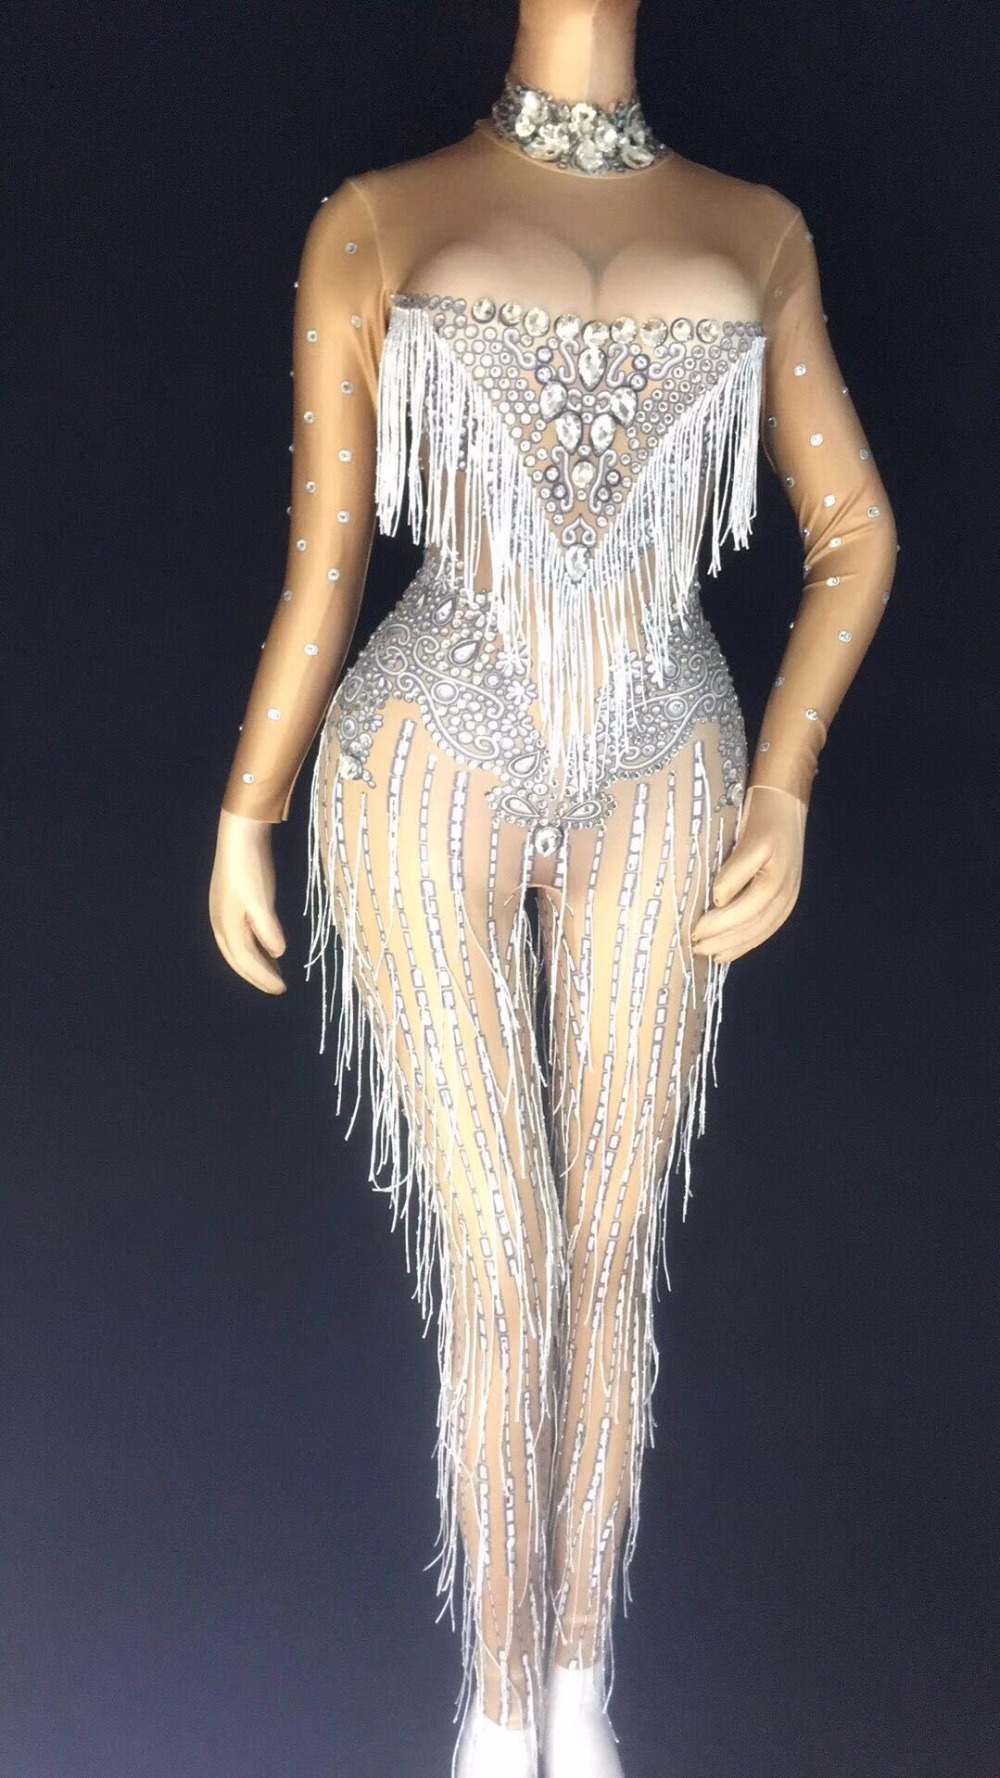 Glisten Silver Rhinestones Jumpsuit Sexy Tassels Big Stones Stretch  Bodysuit Nightclub Singer Dance Party Outfit Women s Clothes a17d5a440c24